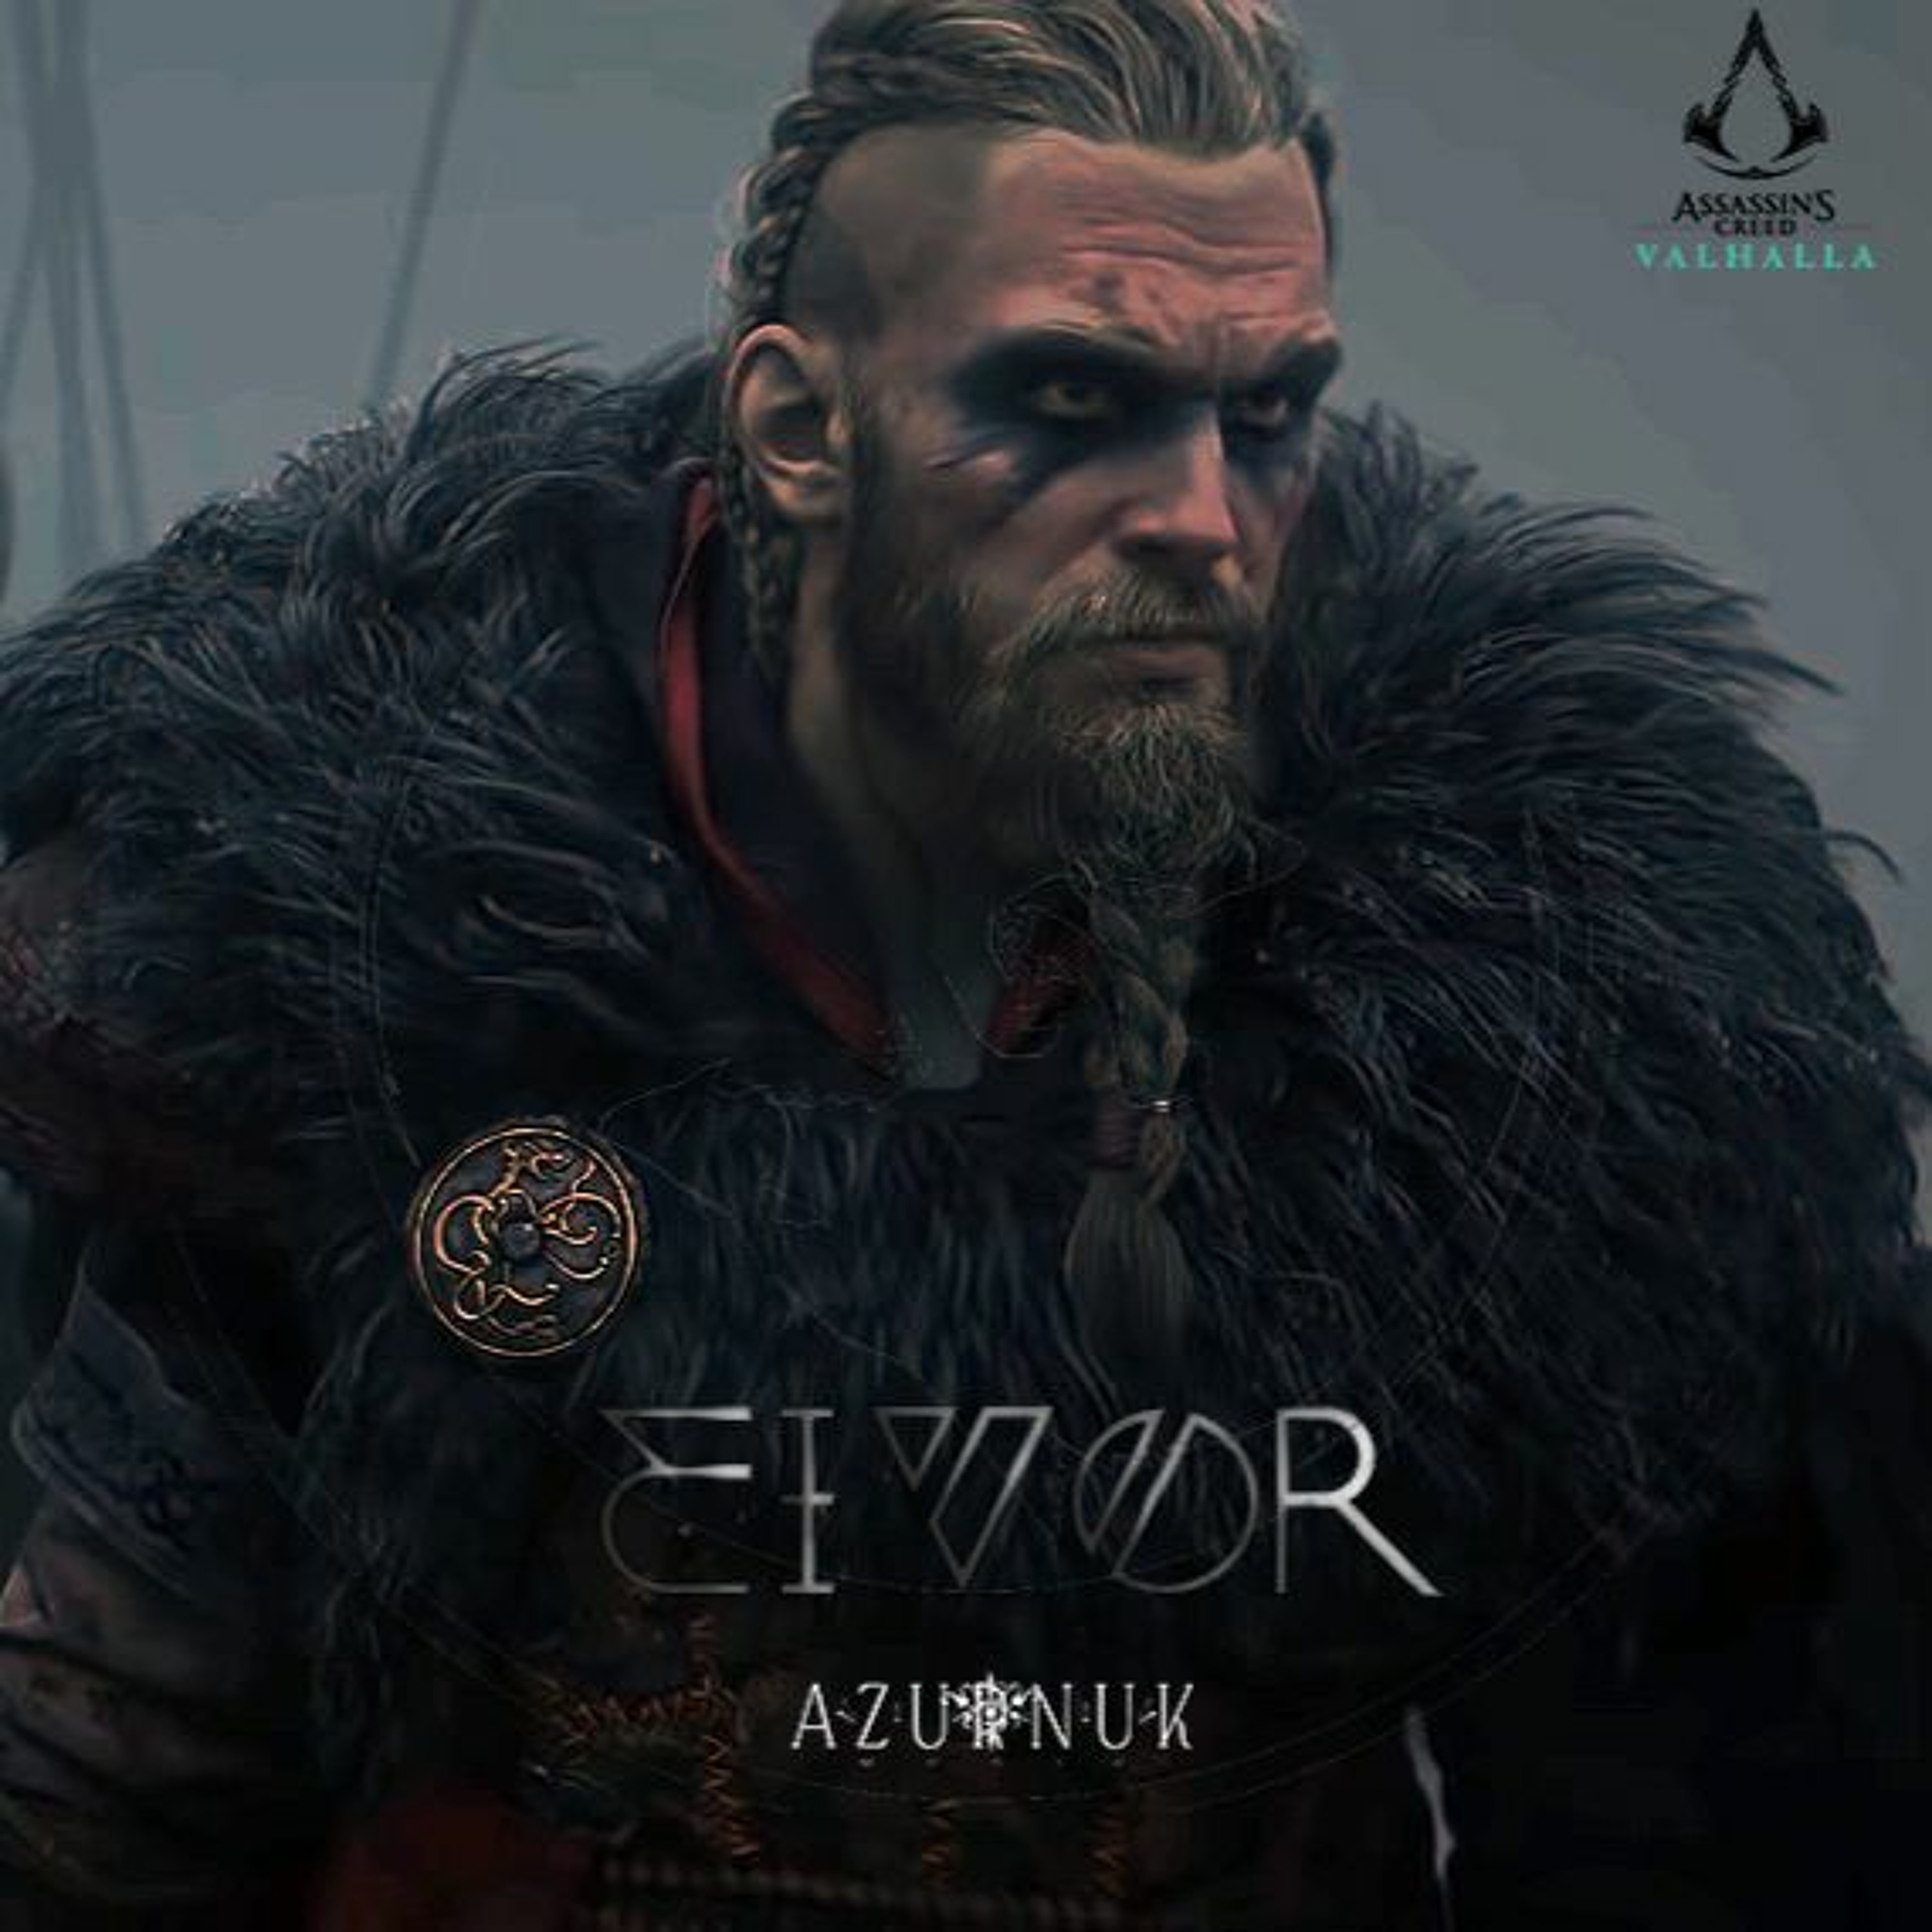 """Eivor"" Assassins Creed Valhalla Epic Theme"